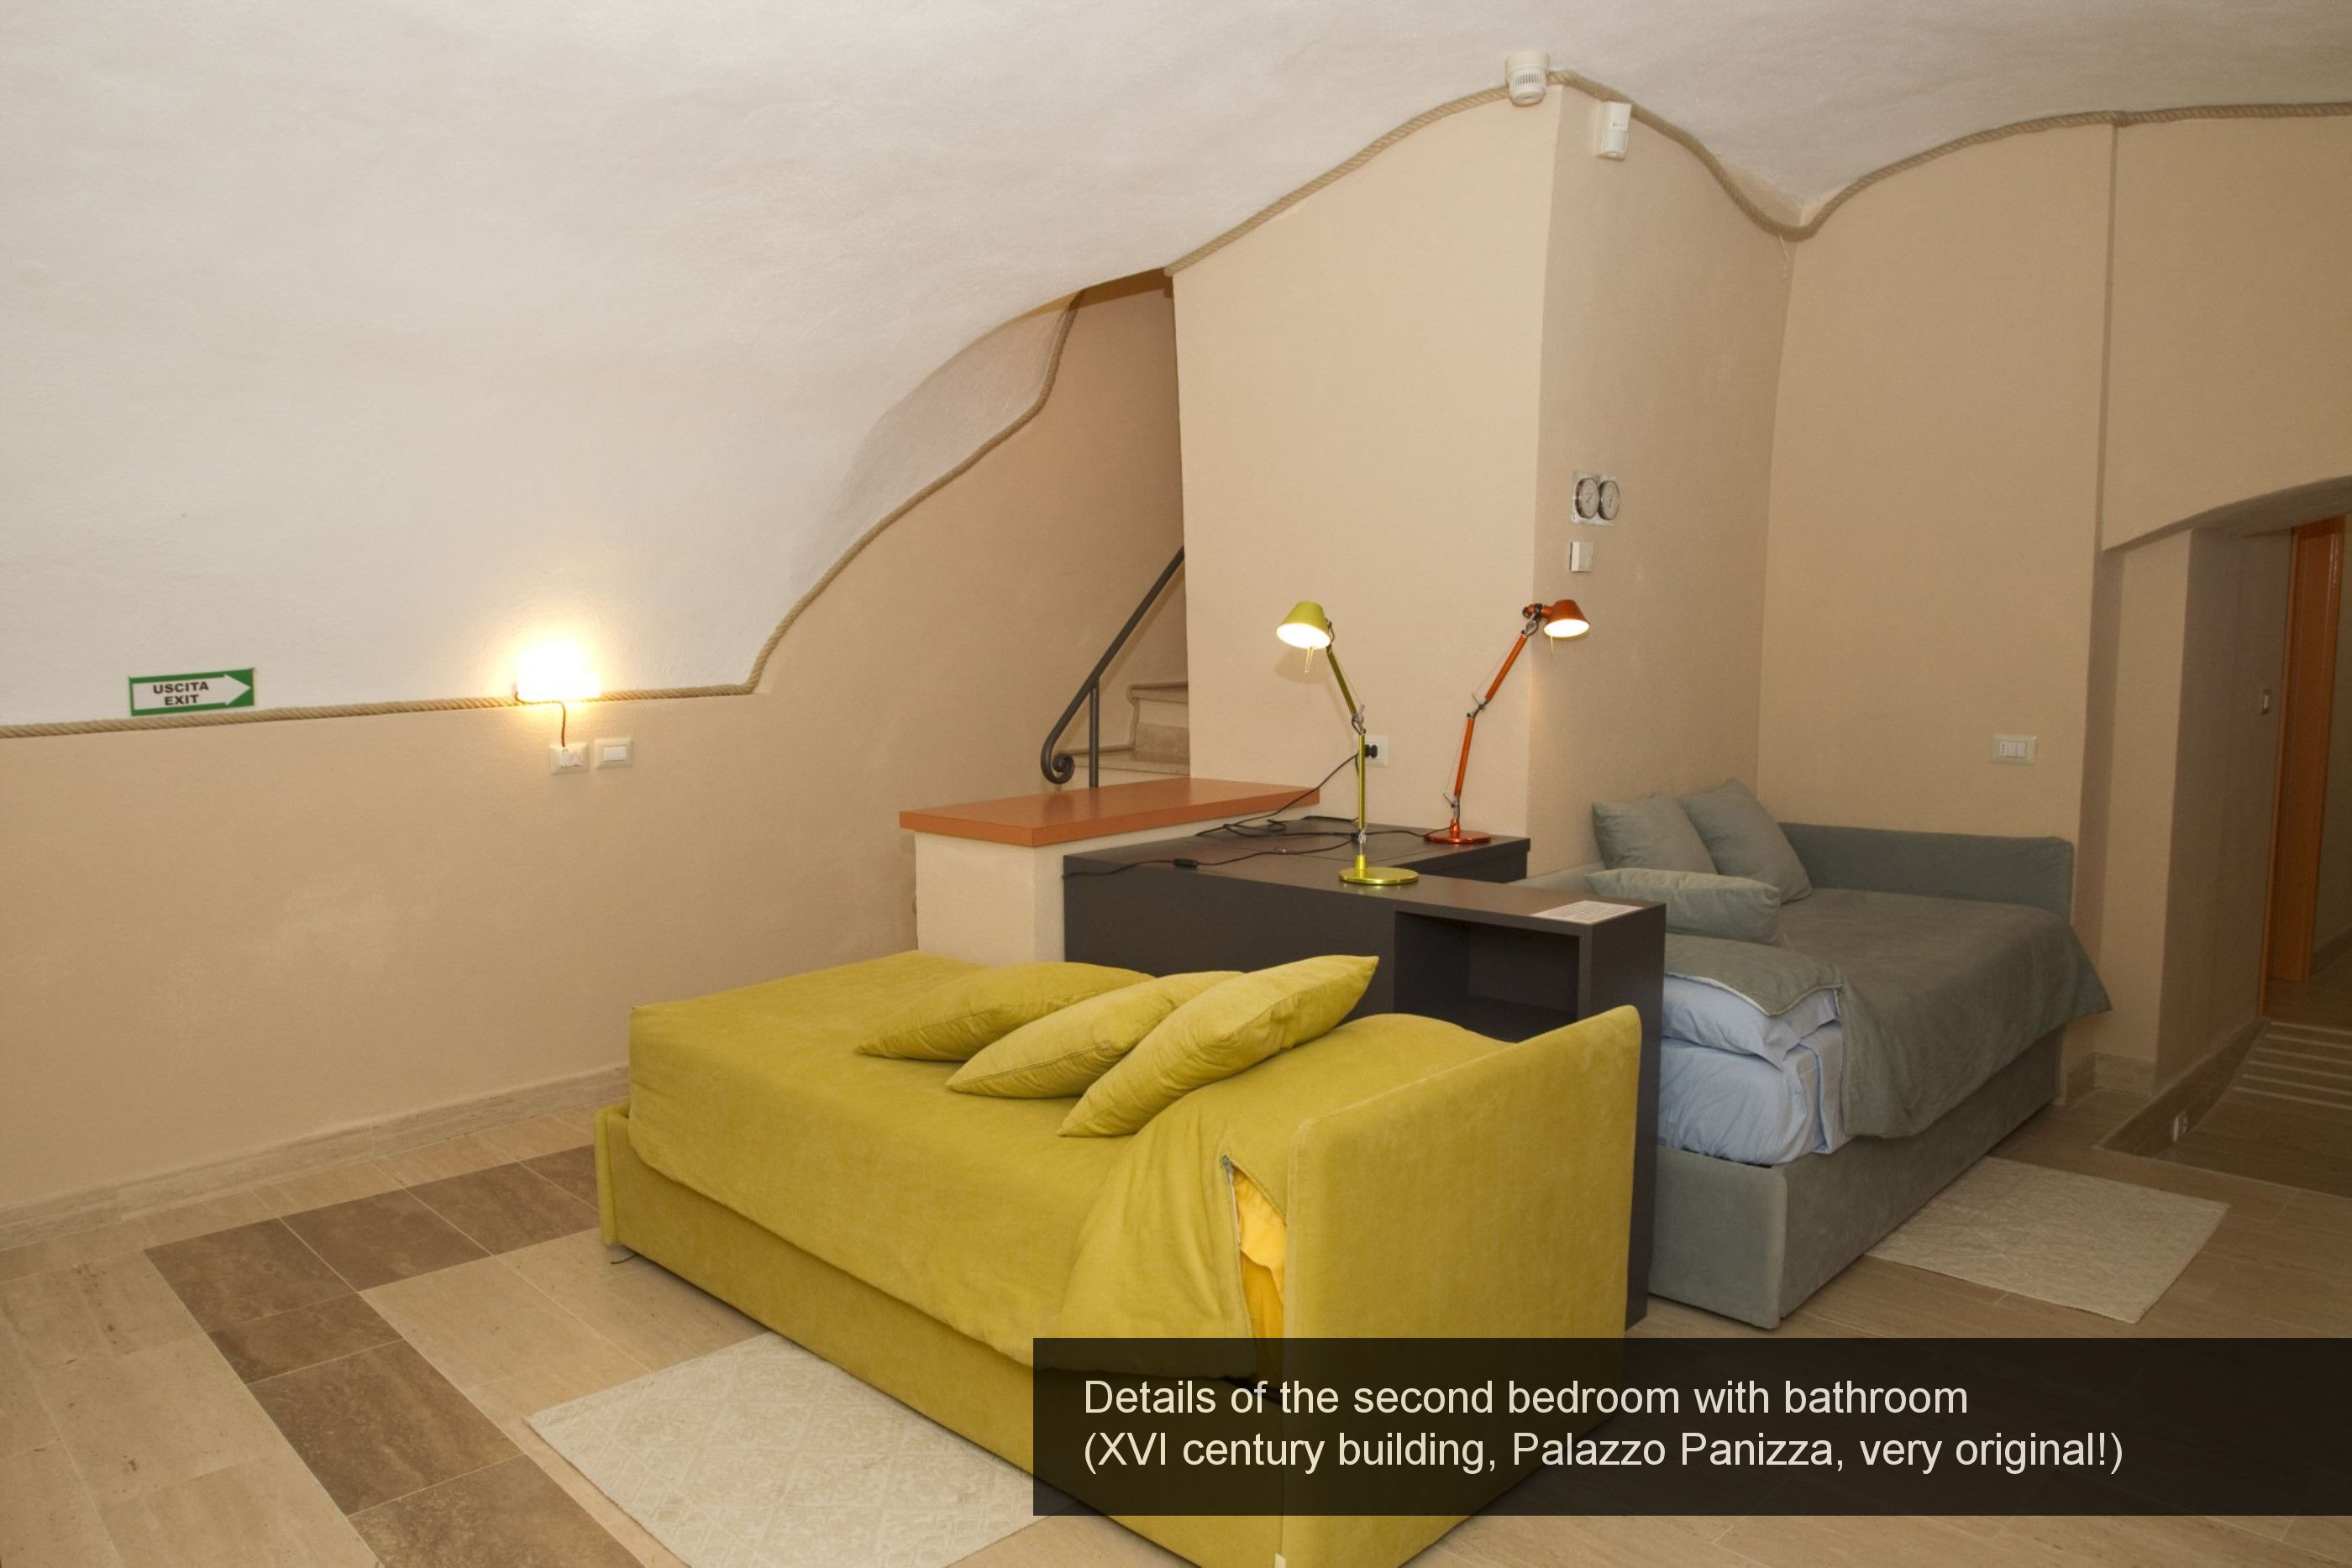 15) details the second bedroom with bathroom (XVI century building, Pala...